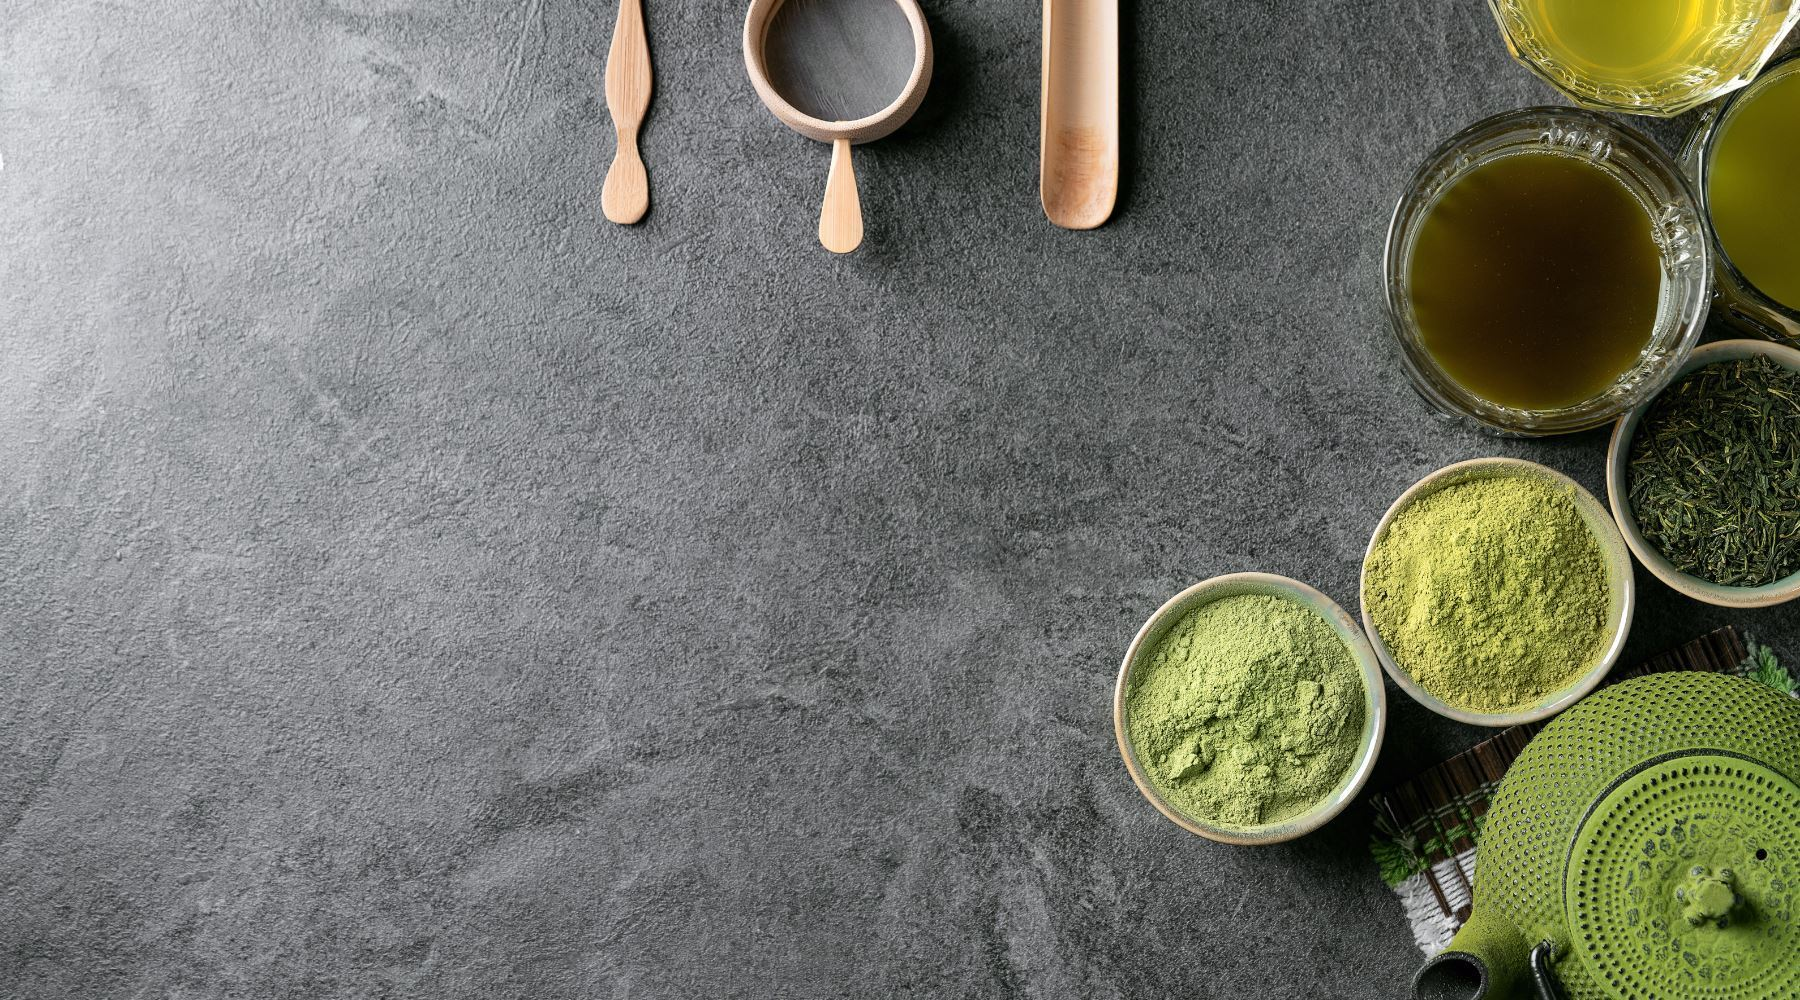 Matcha Tea vs. Green Tea - How Are they Different?